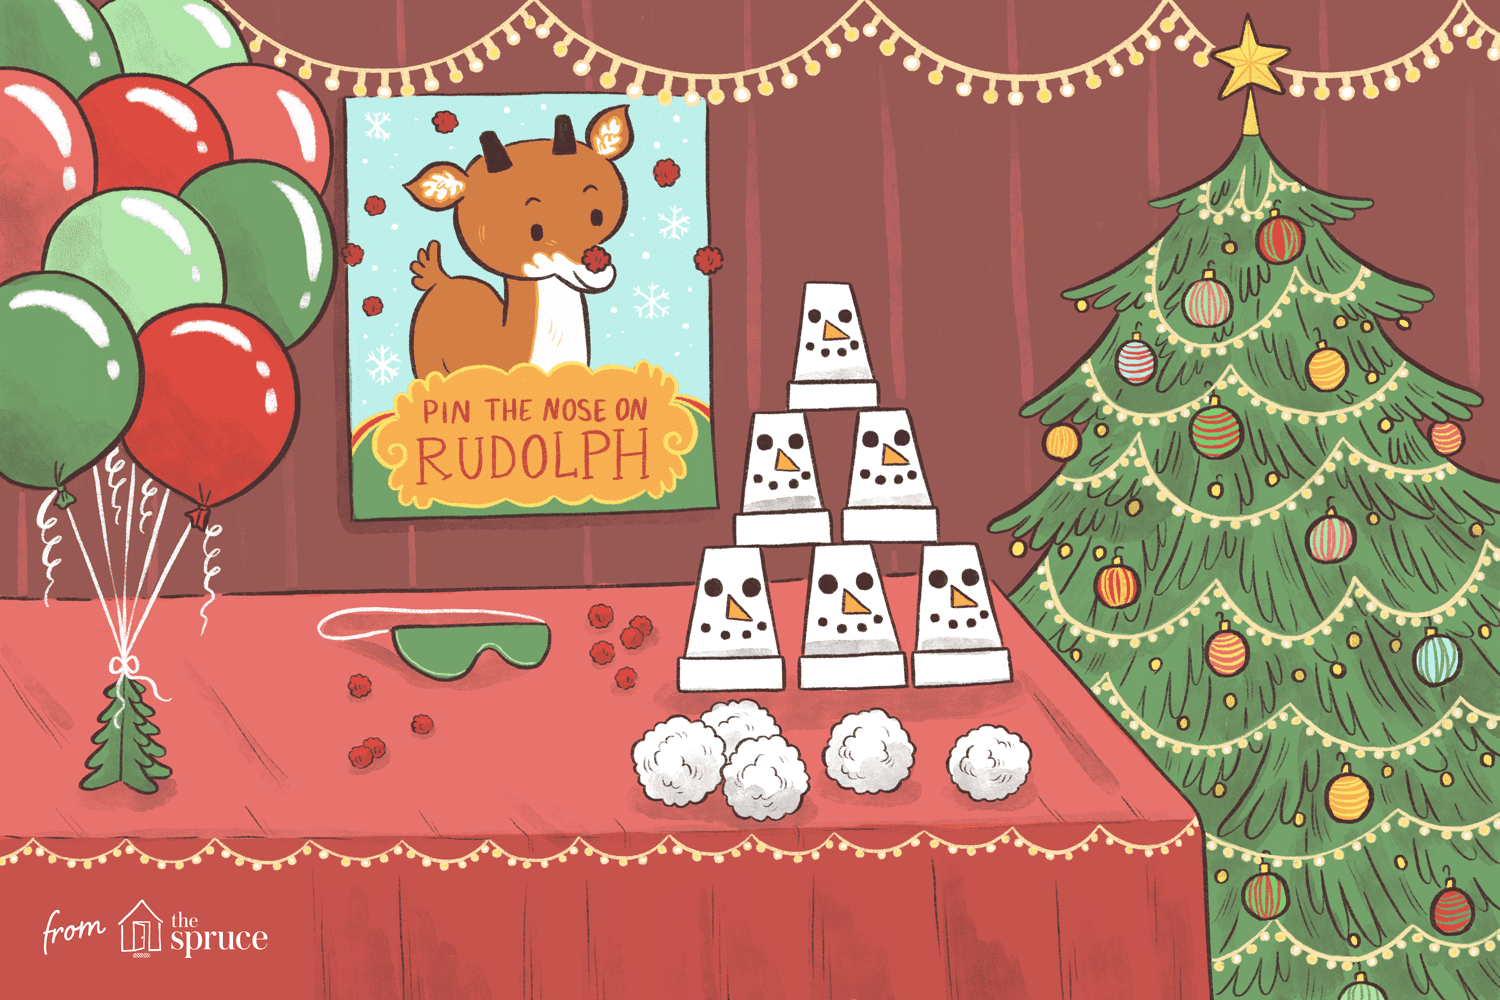 Christmas Pictures For Kids.13 Christmas Party Games For Kids Of All Ages